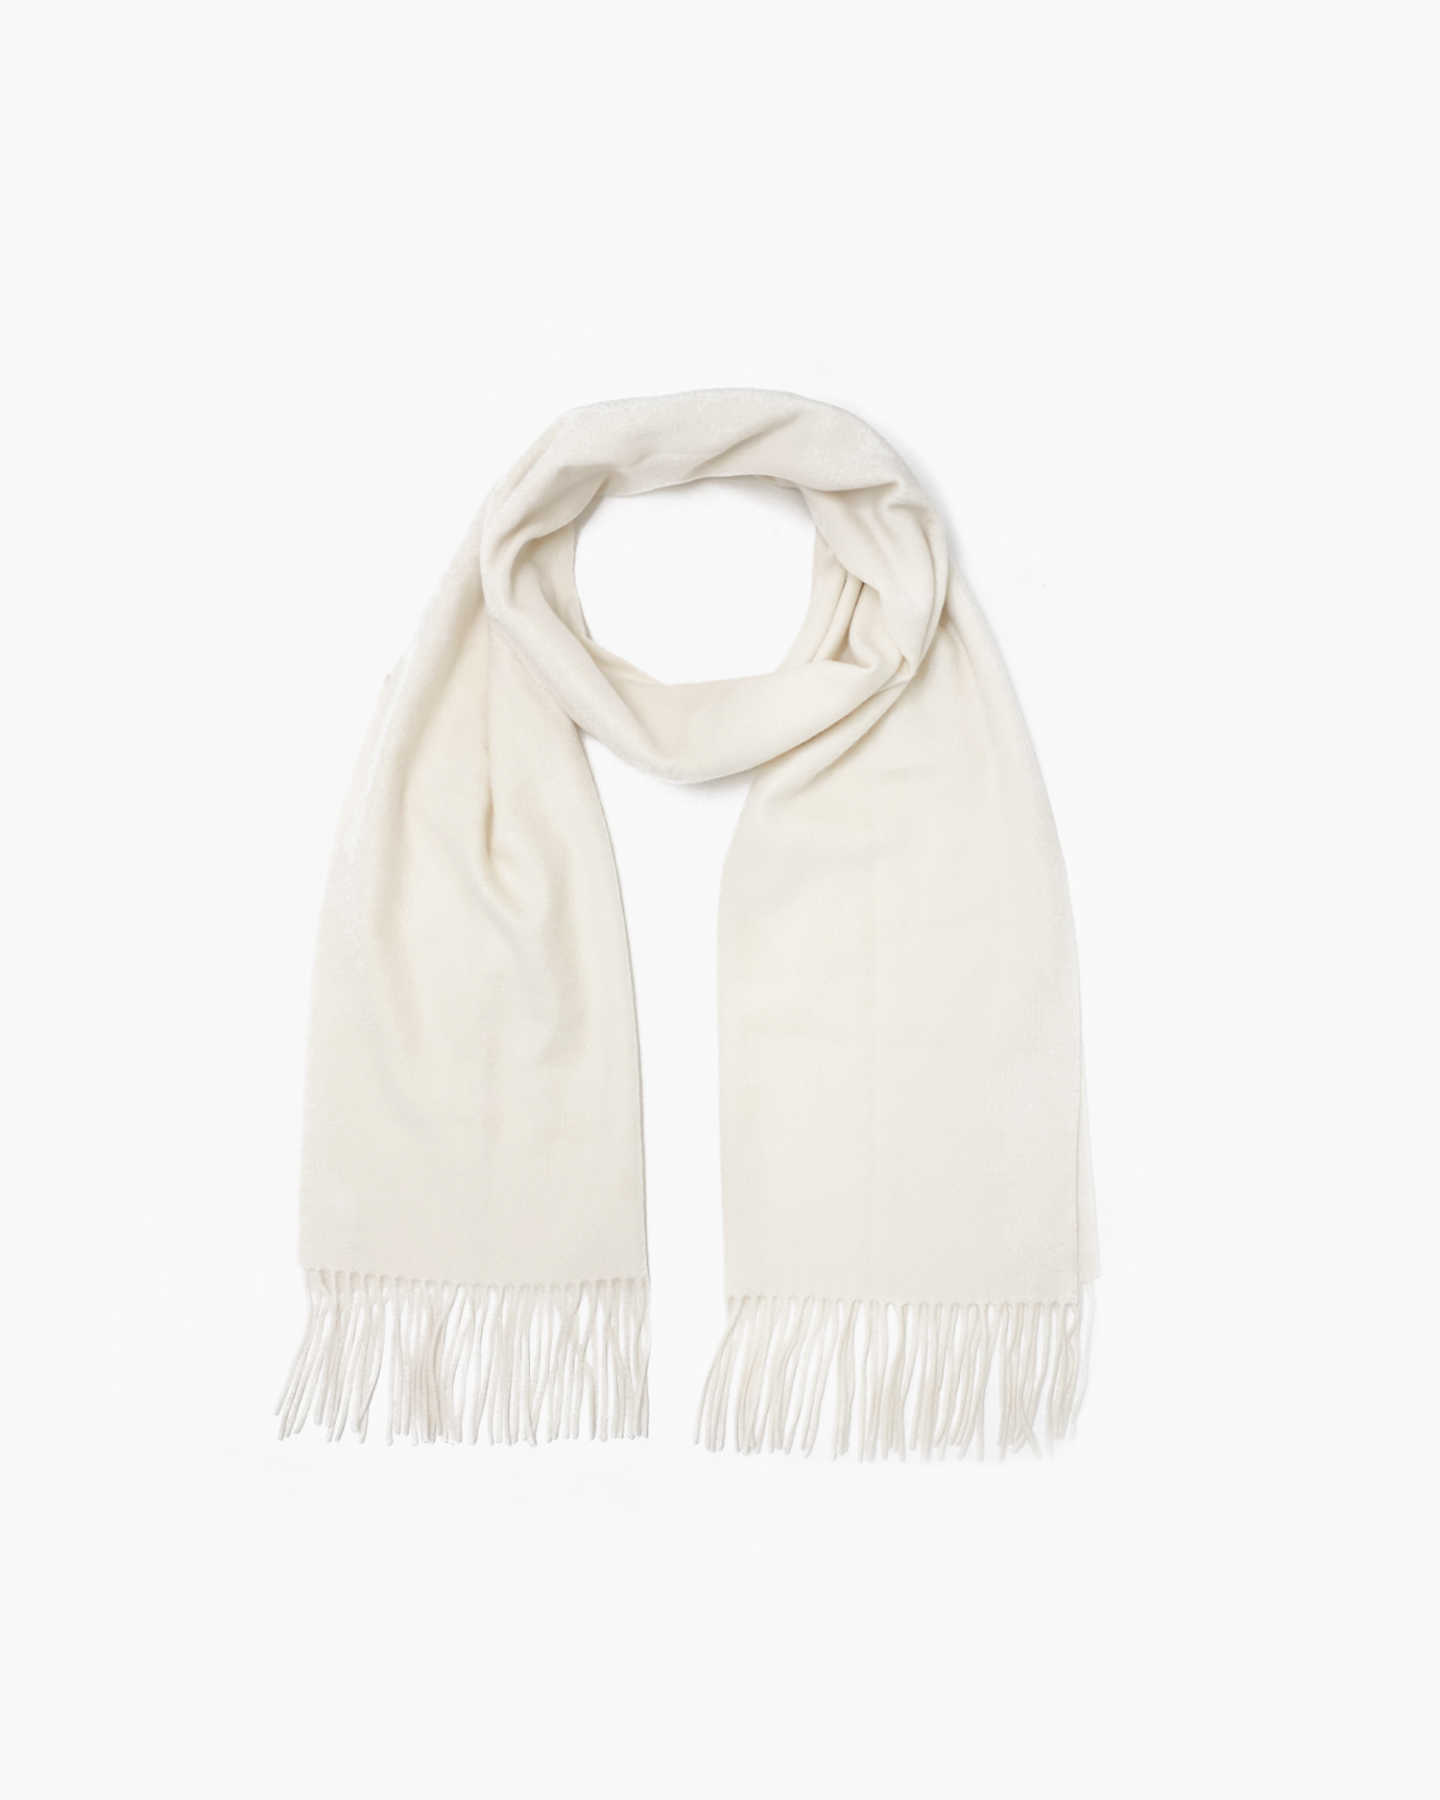 You May Also Like - Mongolian Cashmere Woven Scarf - Ivory